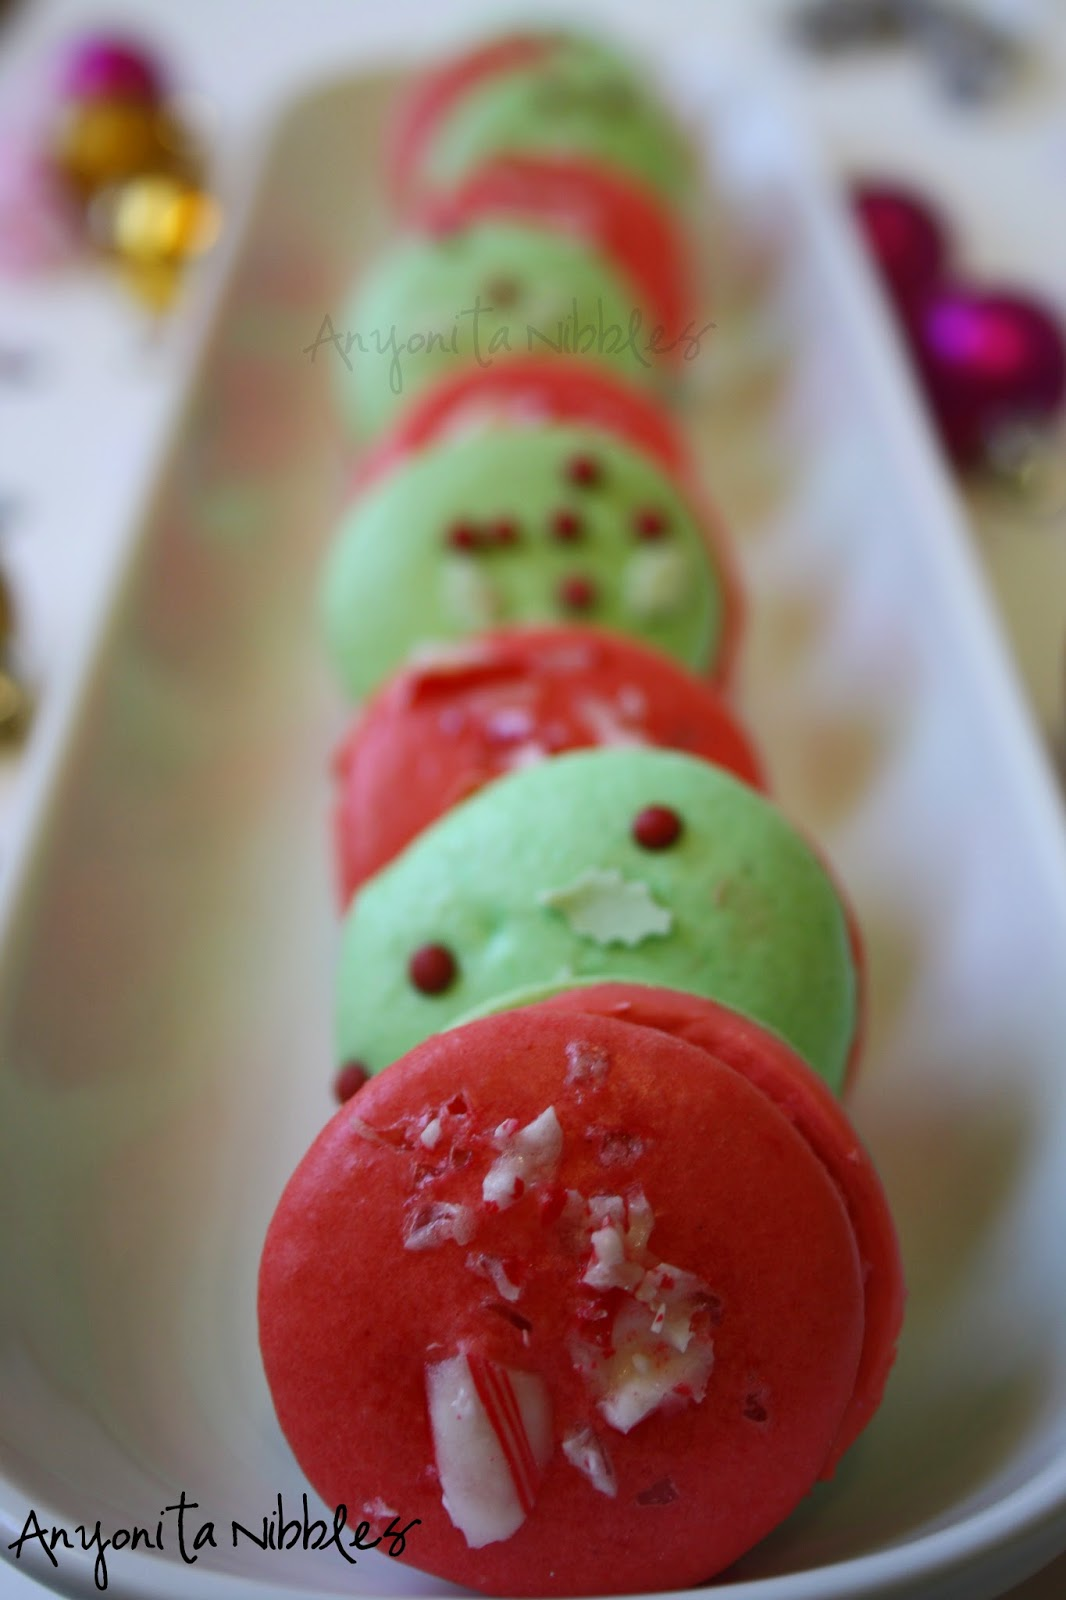 A row of peppermint macarons from Anyonita-nibbles.co.uk